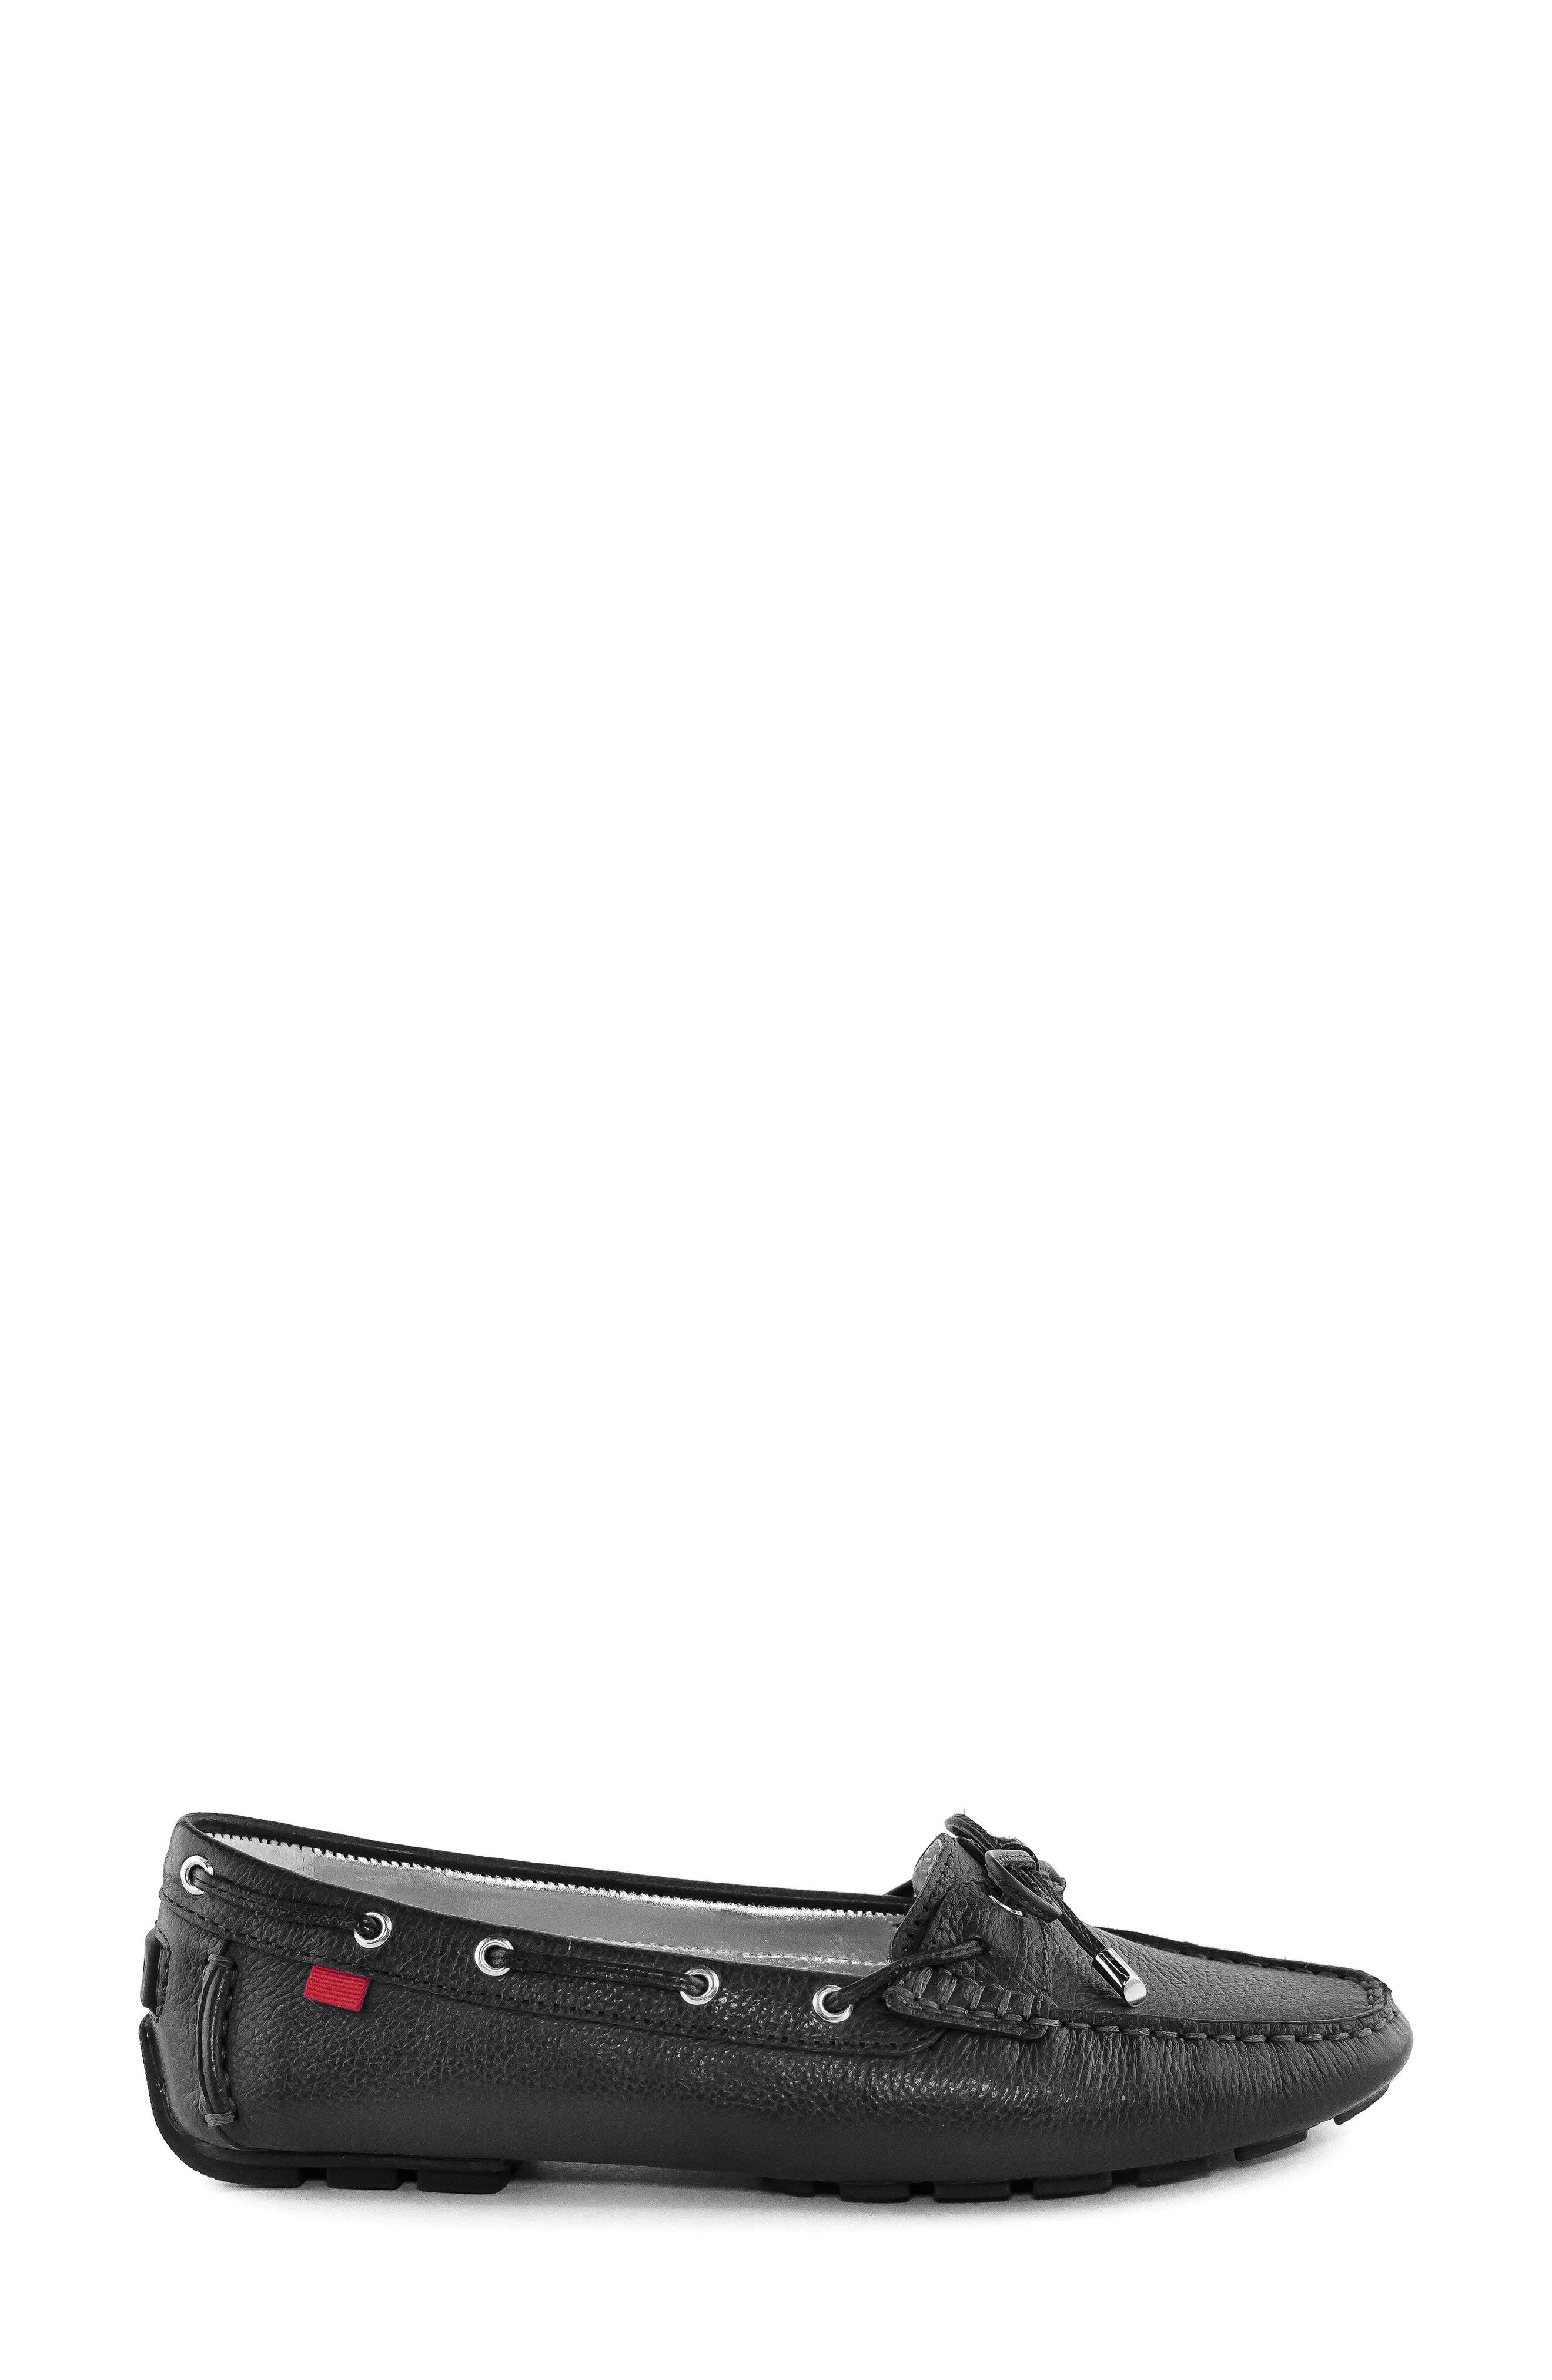 MARC JOSEPH NEW YORK, Rockaway Loafer, Alternate thumbnail 3, color, BLACK LEATHER